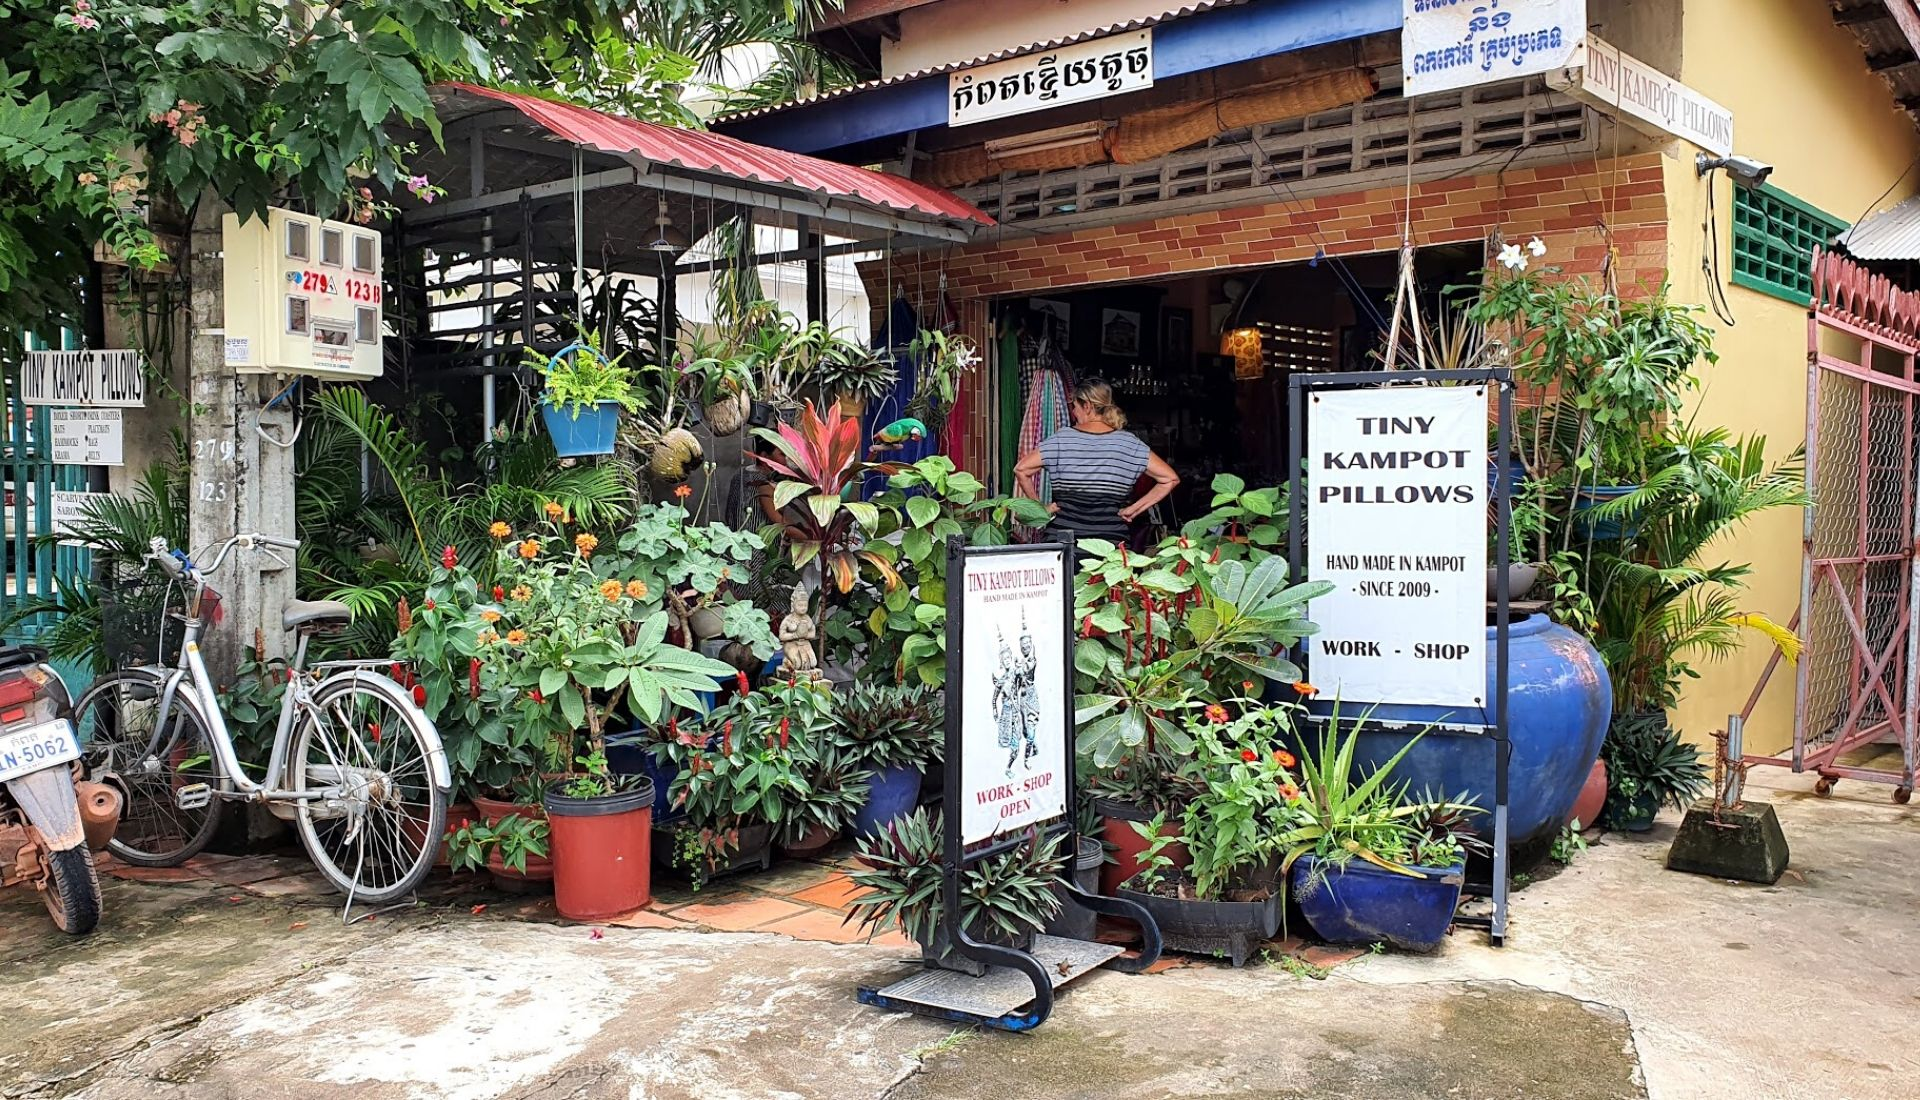 Shop for local handicrafts at Tiny Pillow